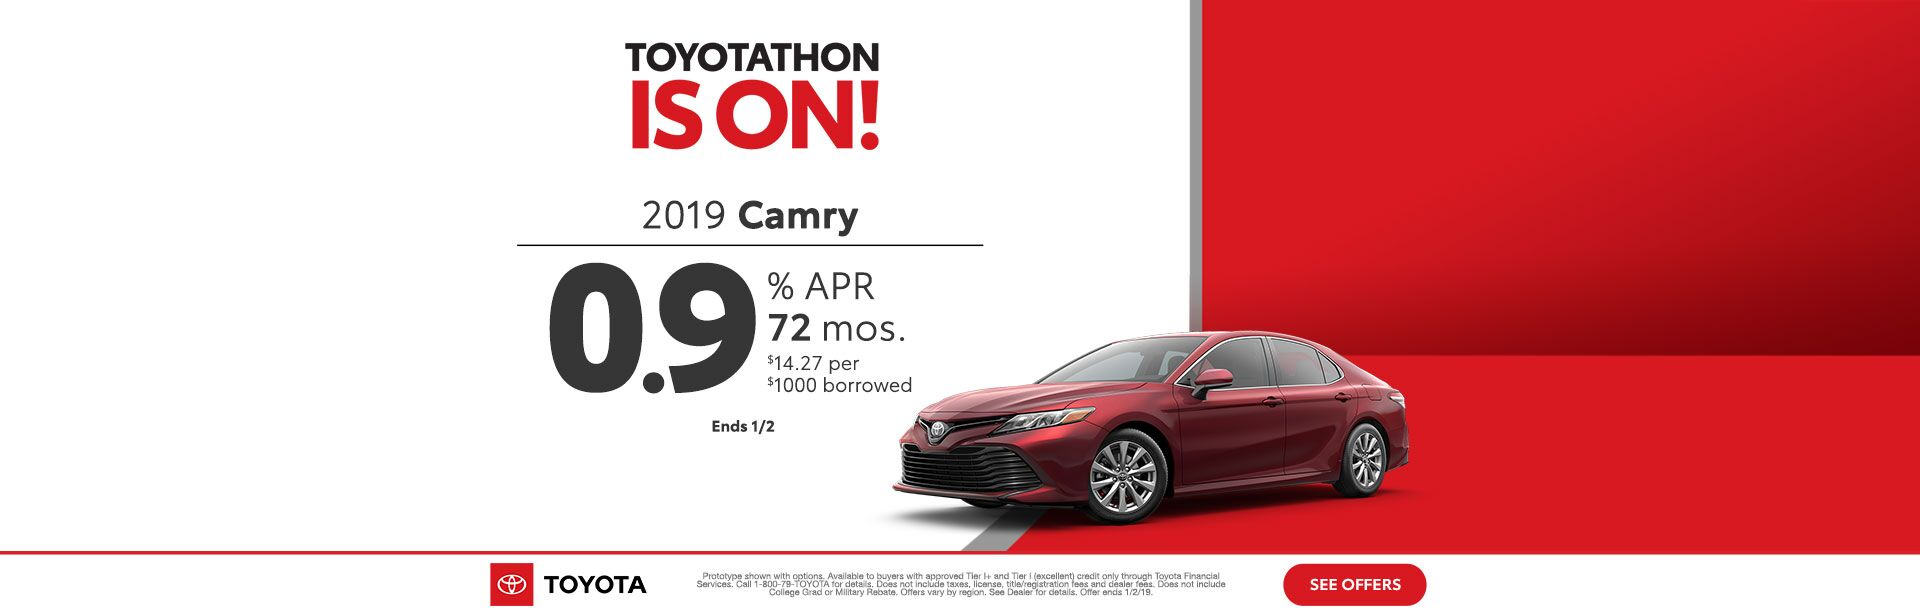 Toyotathon is on Camry Dec 2018